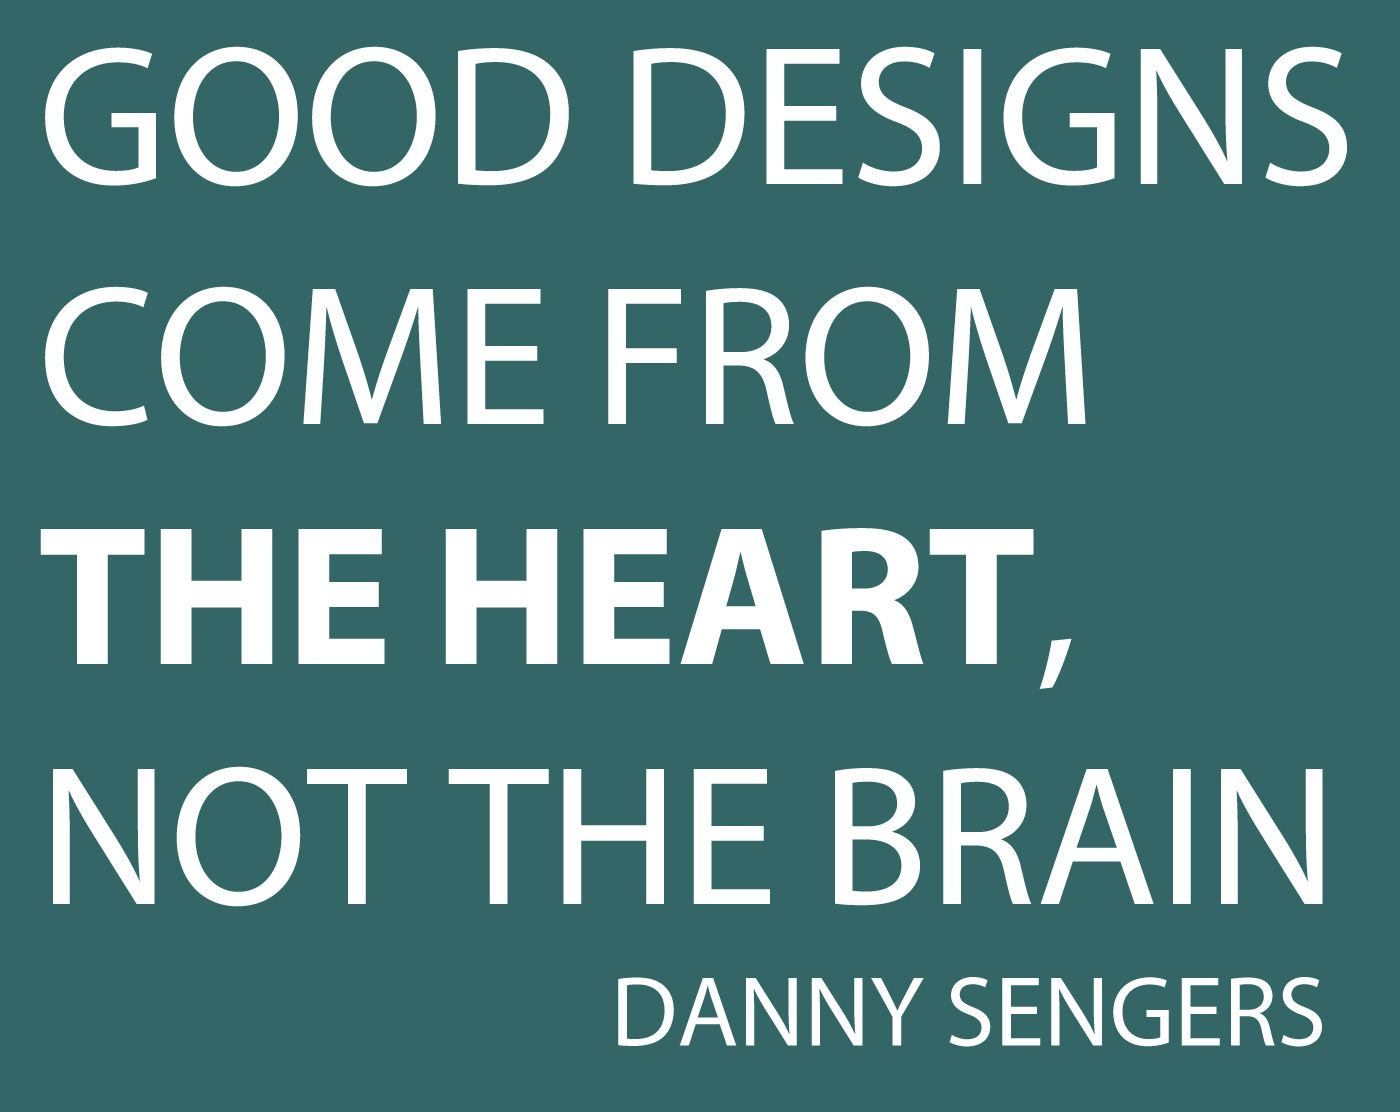 #design #homedesign #quotes #interiordesign #renovation